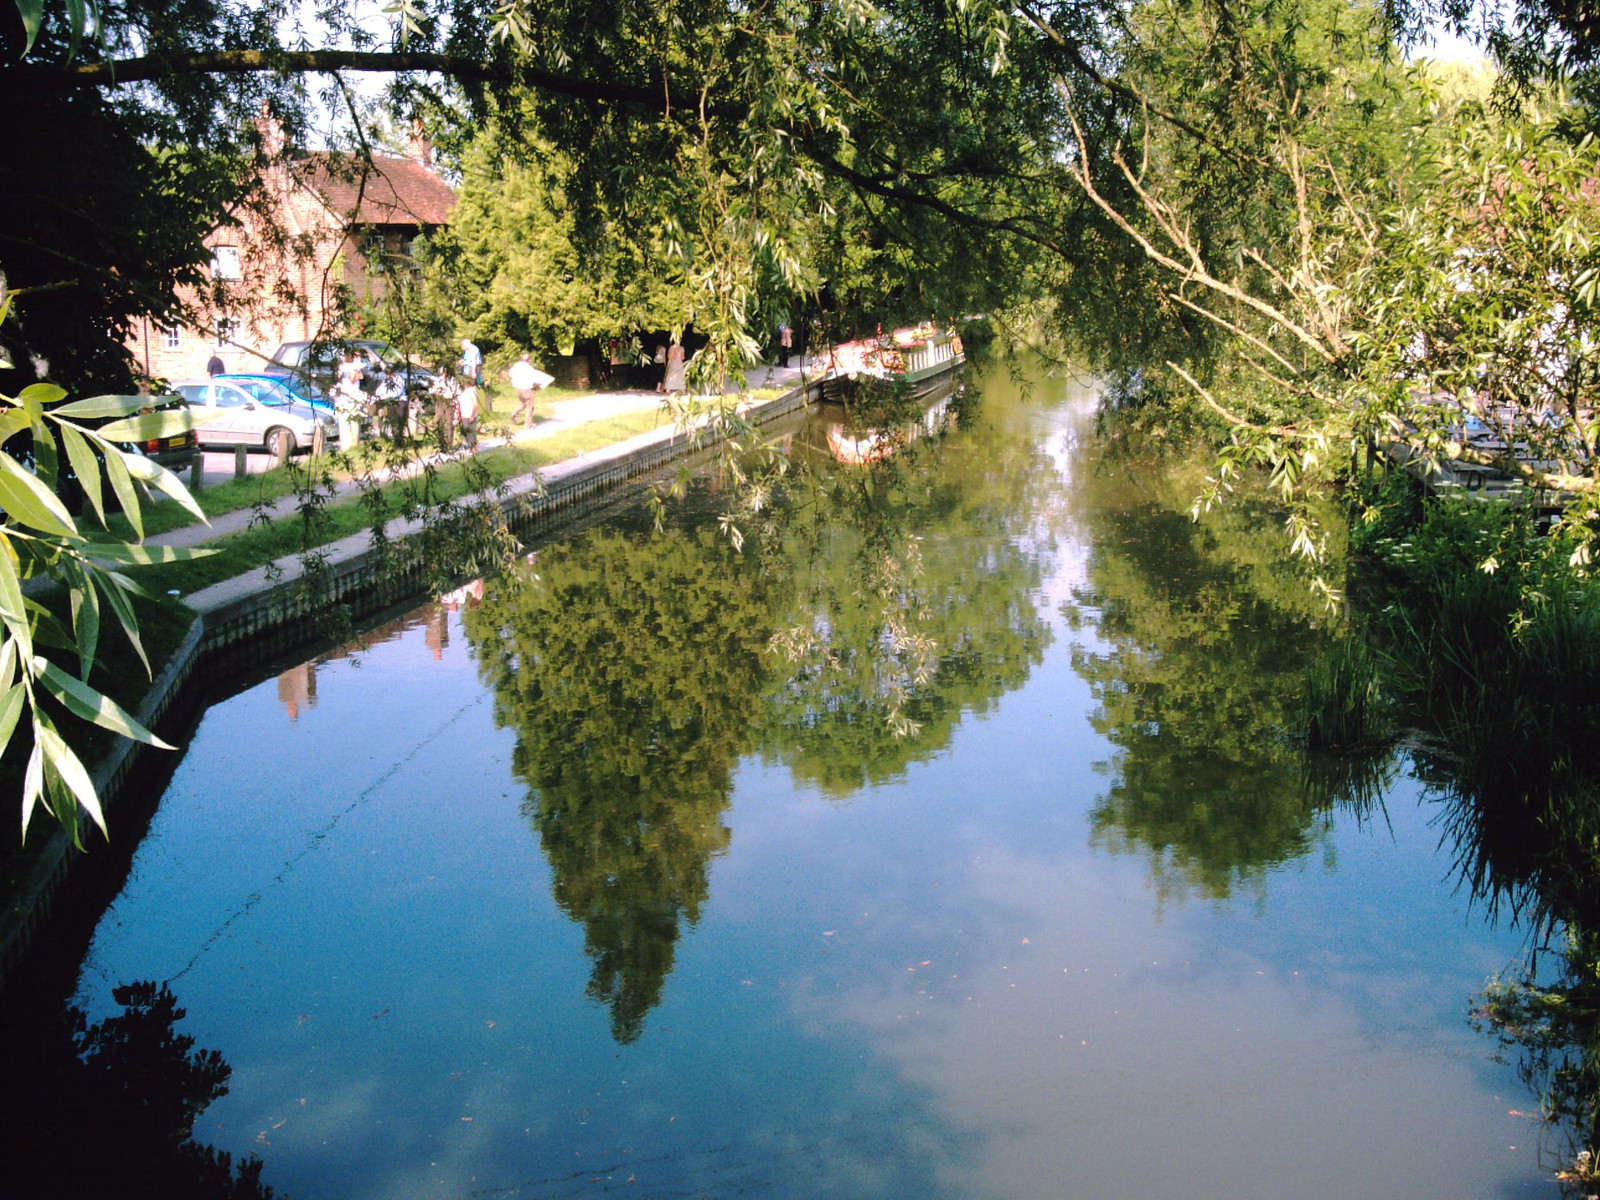 Walk from Kintbury to Great Bedwyn Reflections. Kennet and Avon Canal at Kintbury. D.Allen. Vivitar 5199 5mp